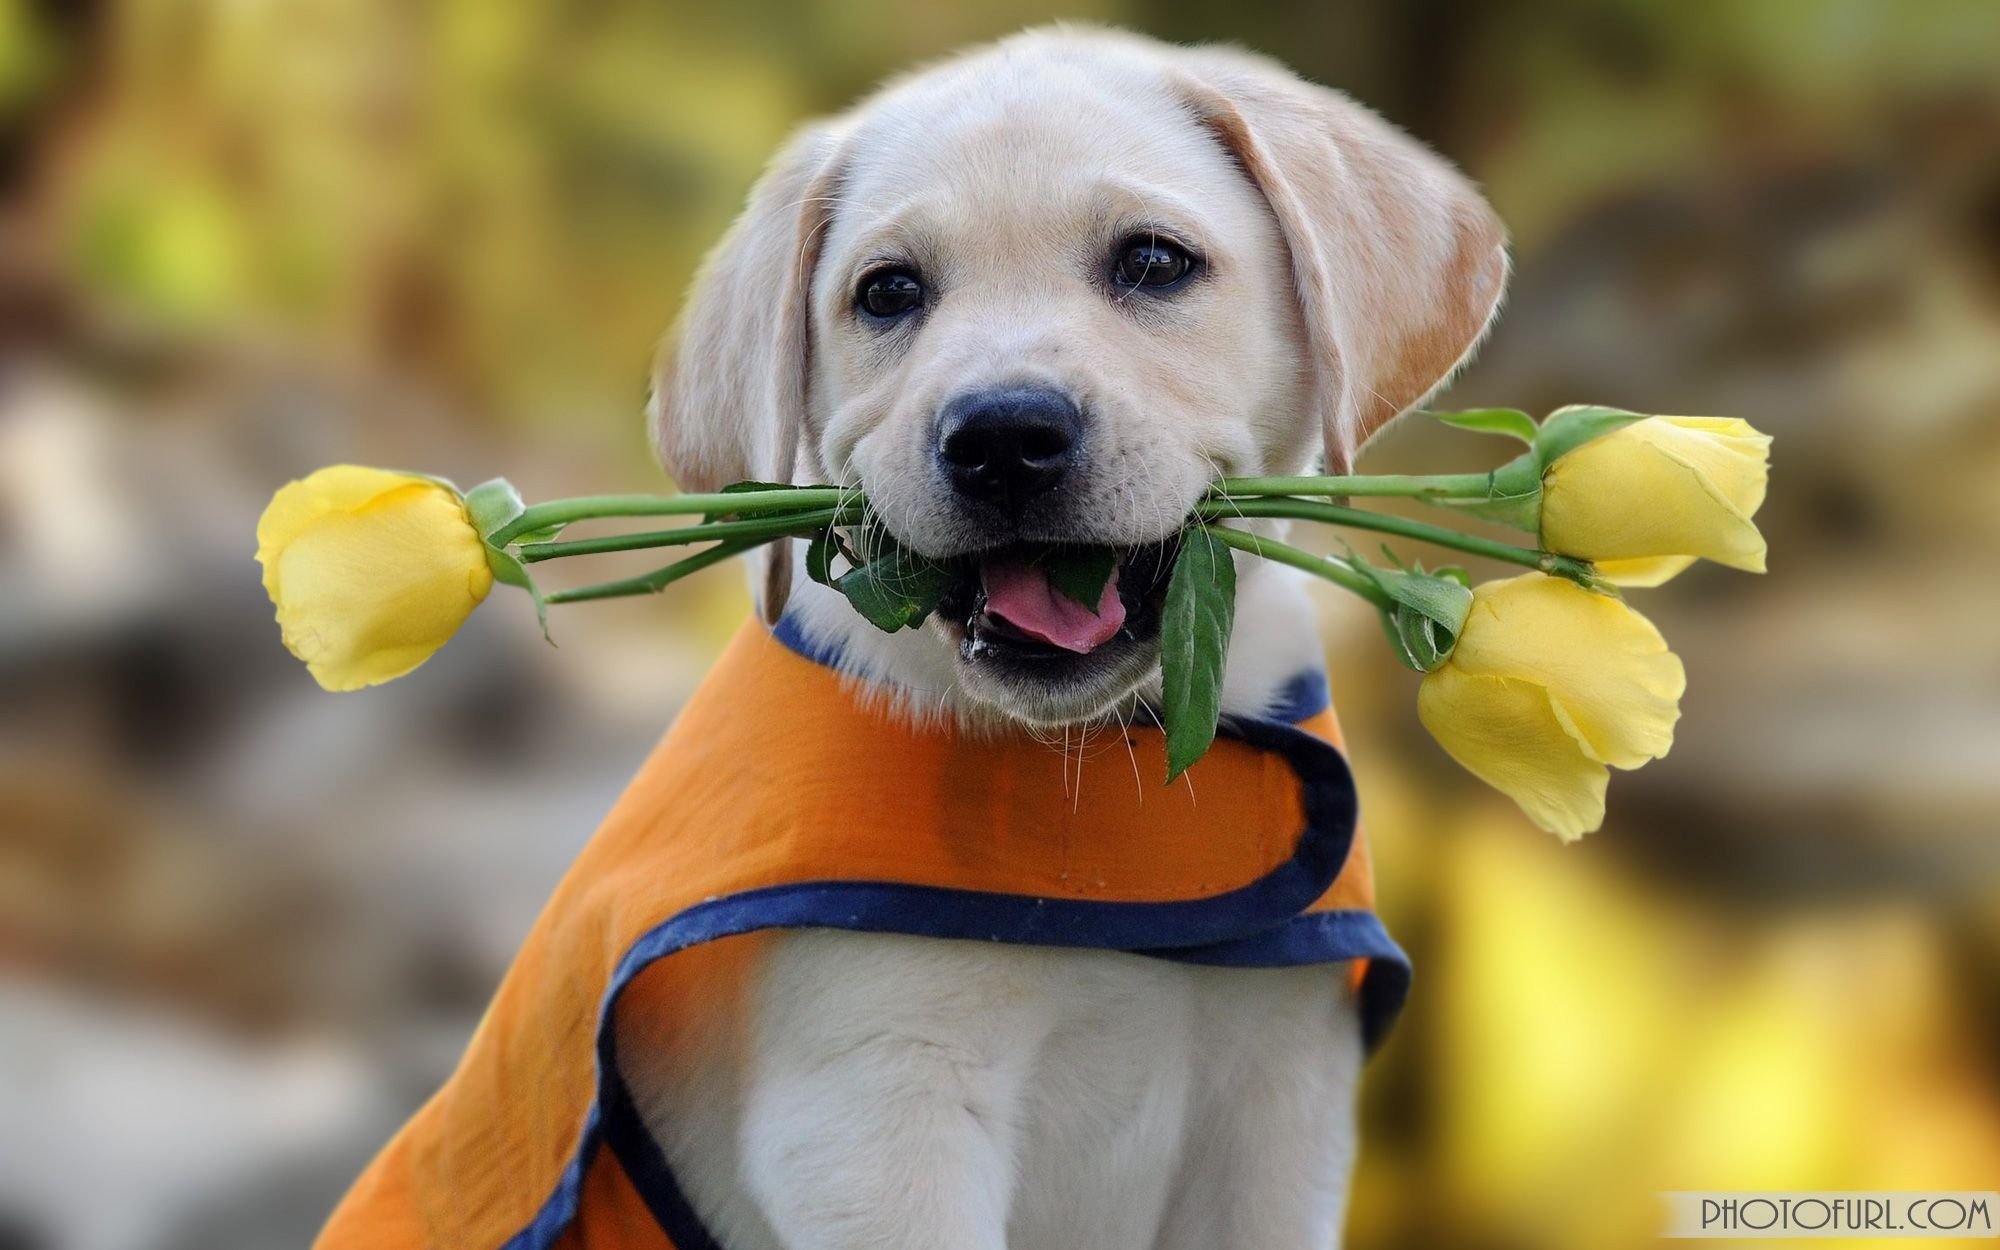 55 Cute Dog Android Iphone Desktop Hd Backgrounds Wallpapers 1080p 4k 2000x1250 2020